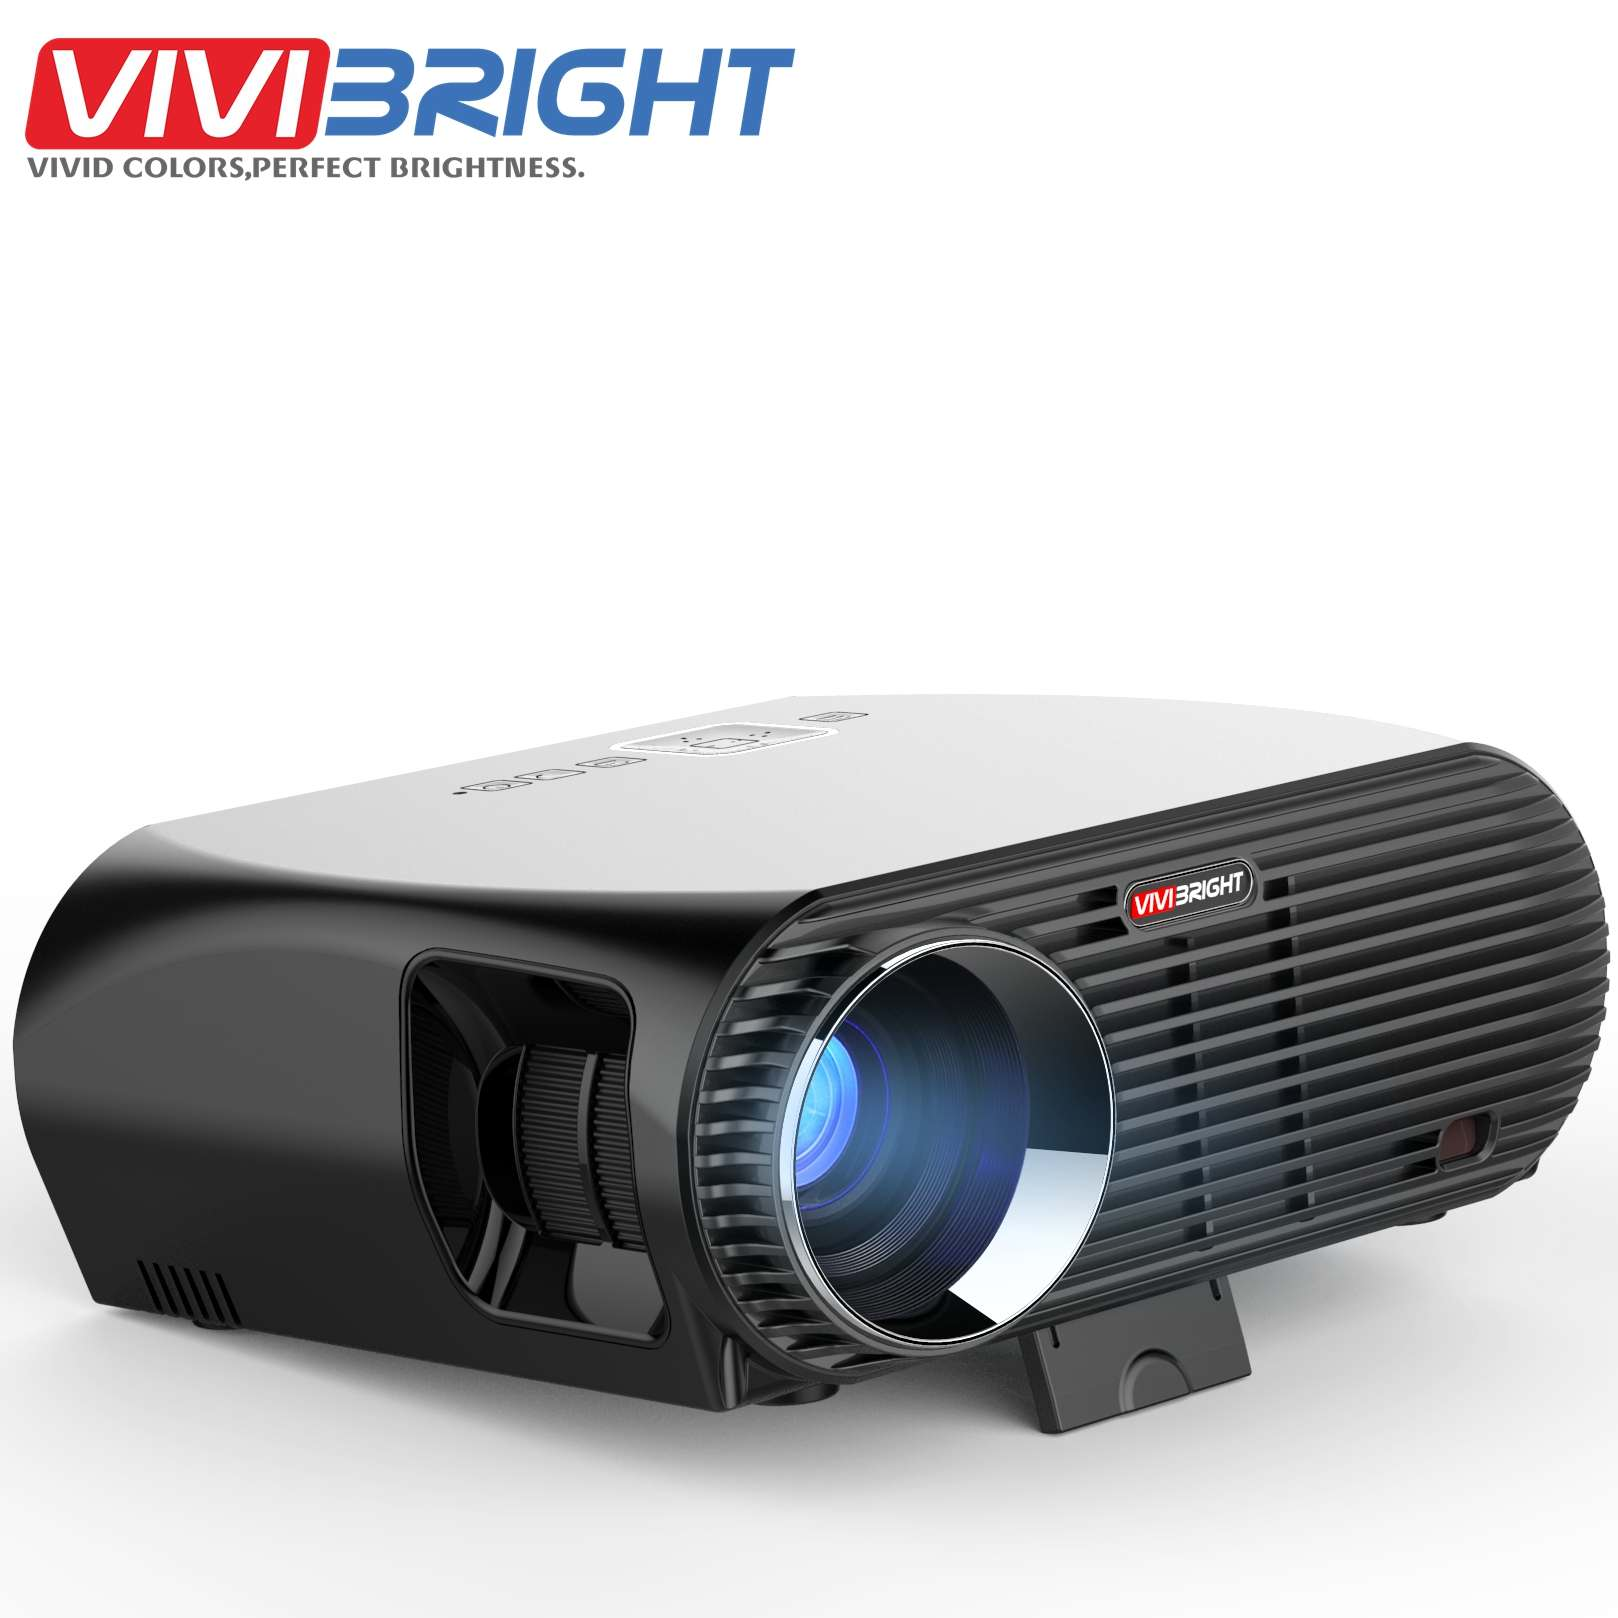 Vivibright GP100UP Android 6 01 WIFI Smart LED Projector 3500 Lumens 1280 800p 1080P HD Home